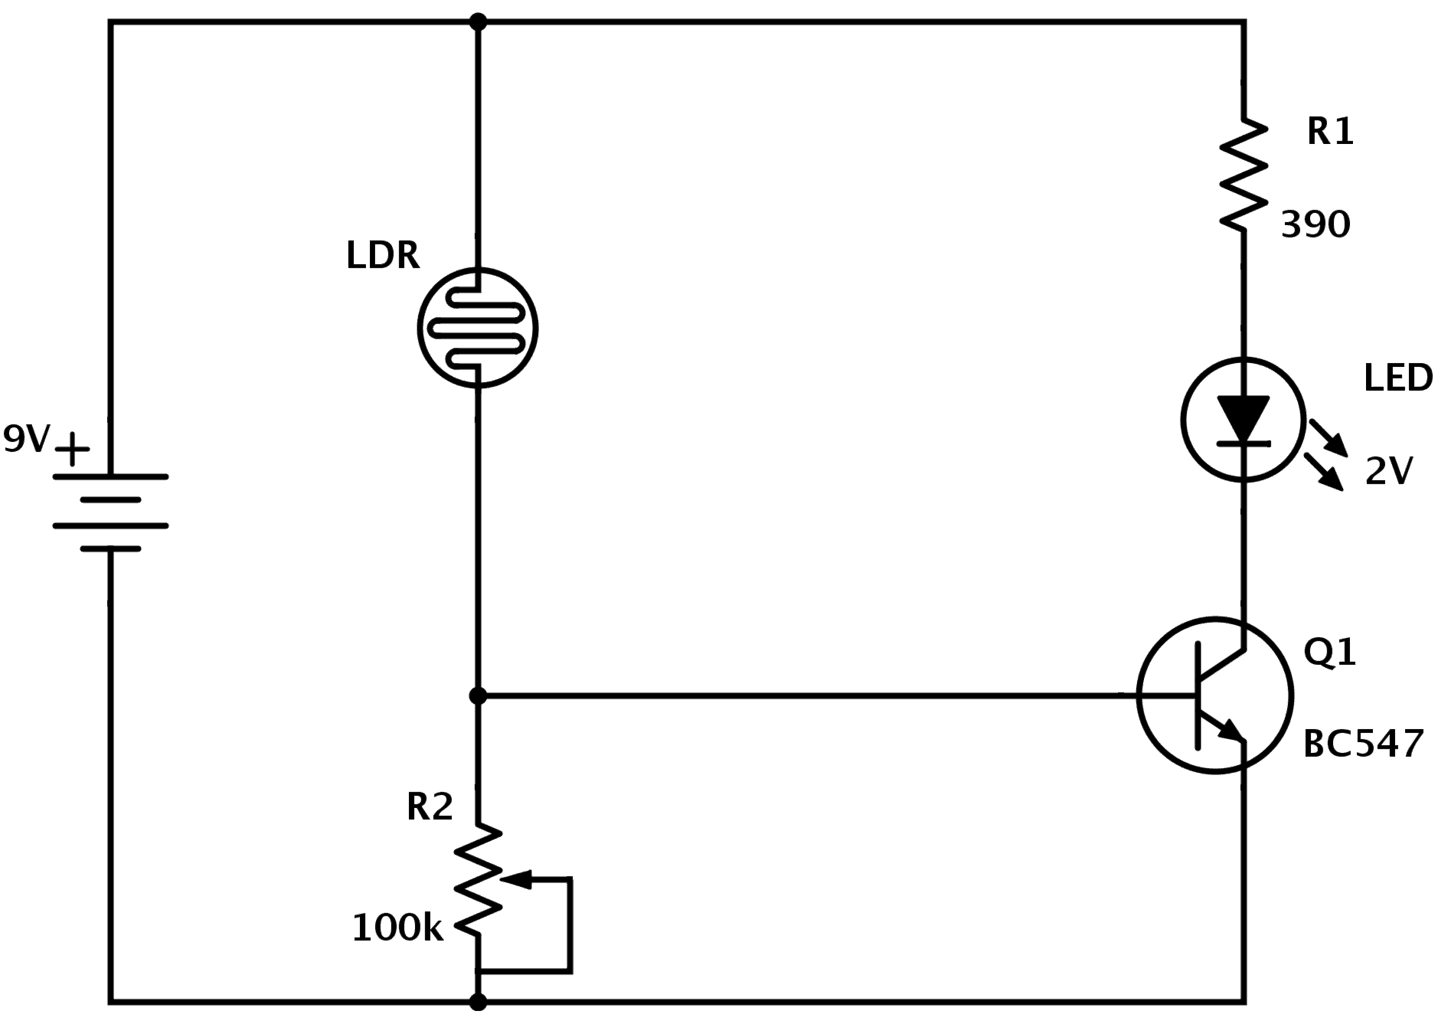 Ldr Circuit Diagram Build Electronic Circuits Microcontroller Based Schematics Projects And Tutorial